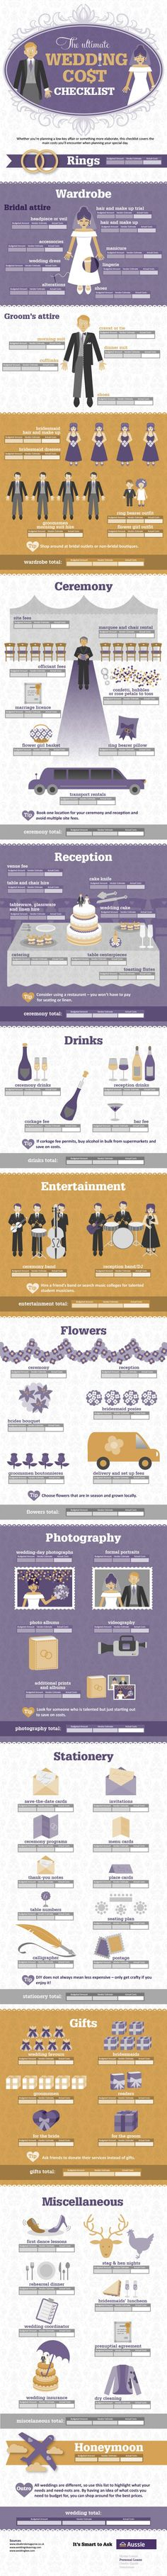 The Ultimate Wedding Cost Checklist Infographic. Wow, its more expensive than i thought..... more reason not to get married?